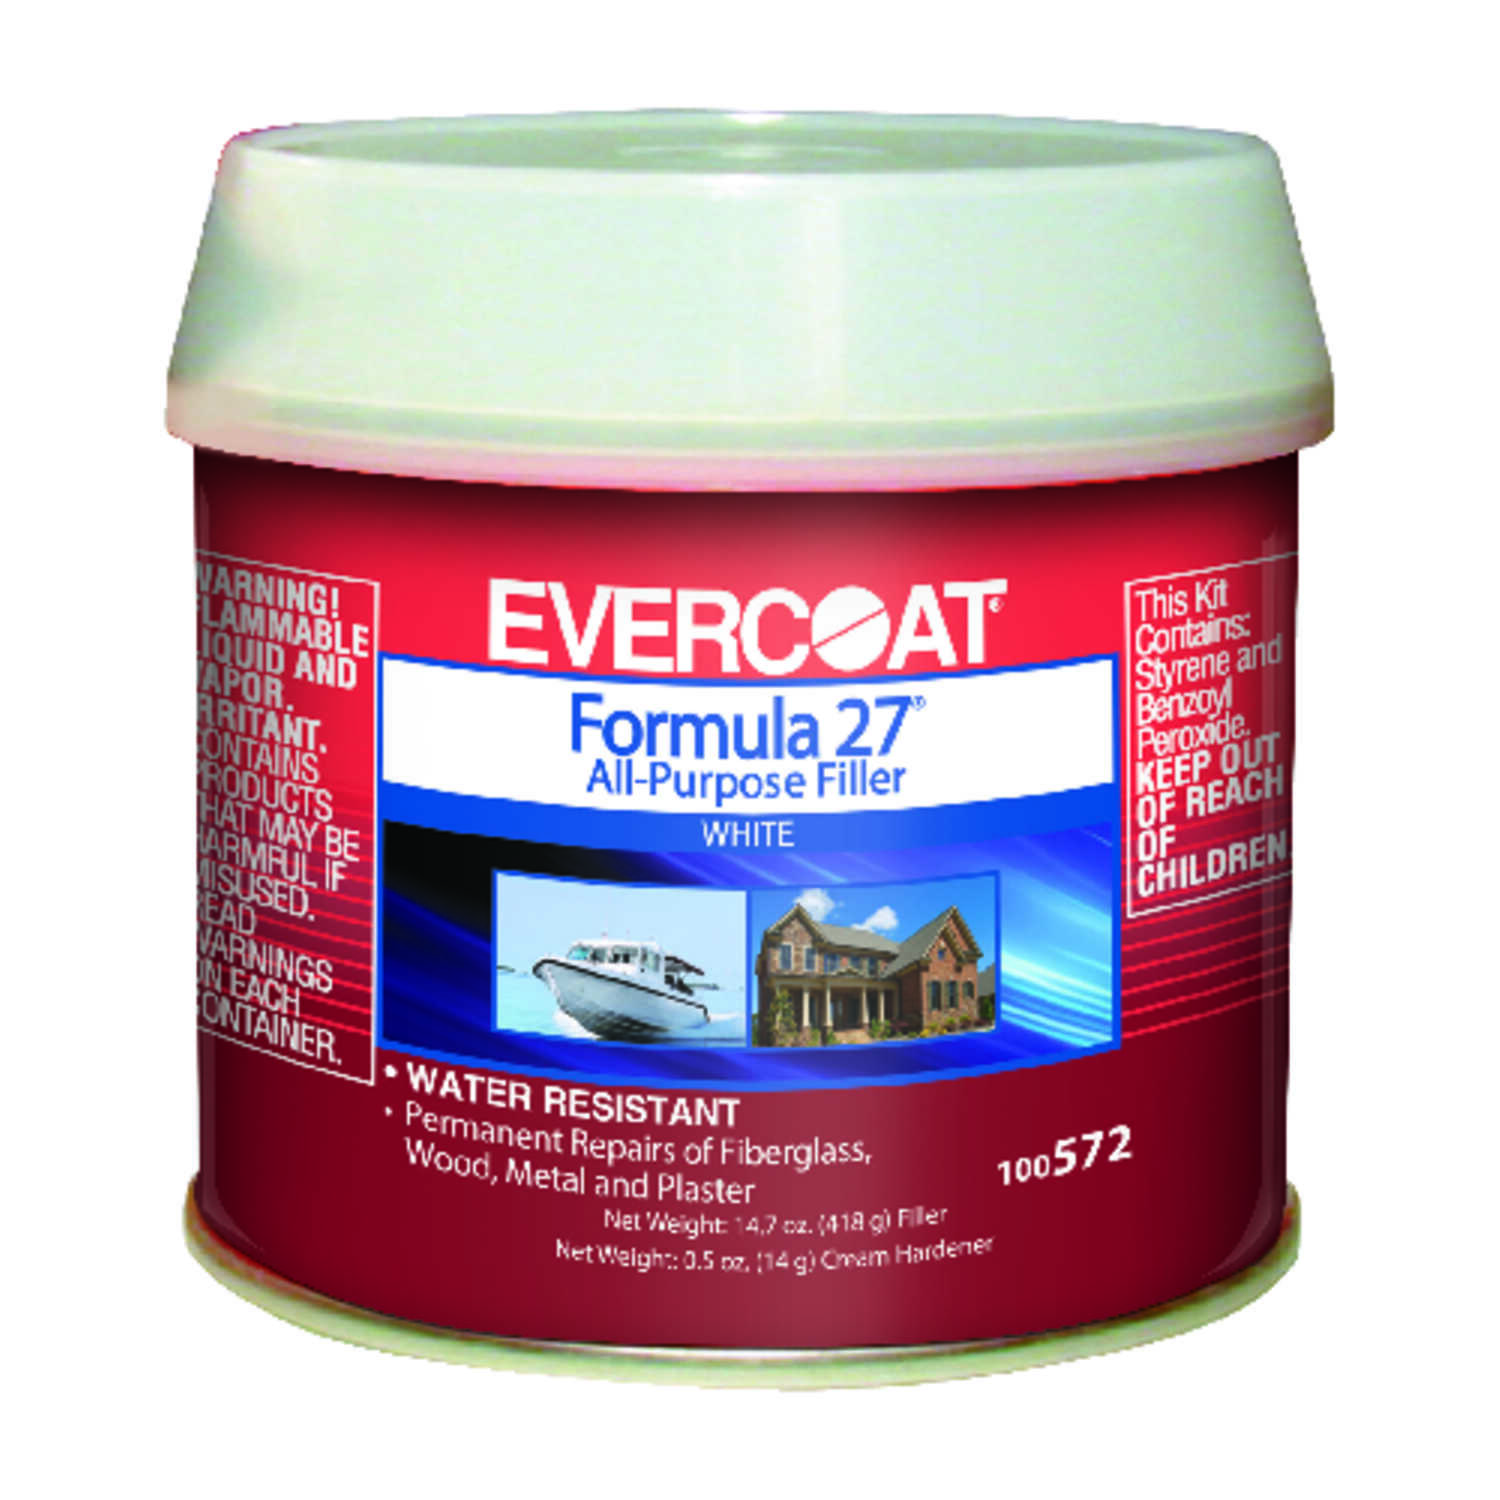 Evercoat  Formula 27  All-Purpose Filler  15.2 oz.